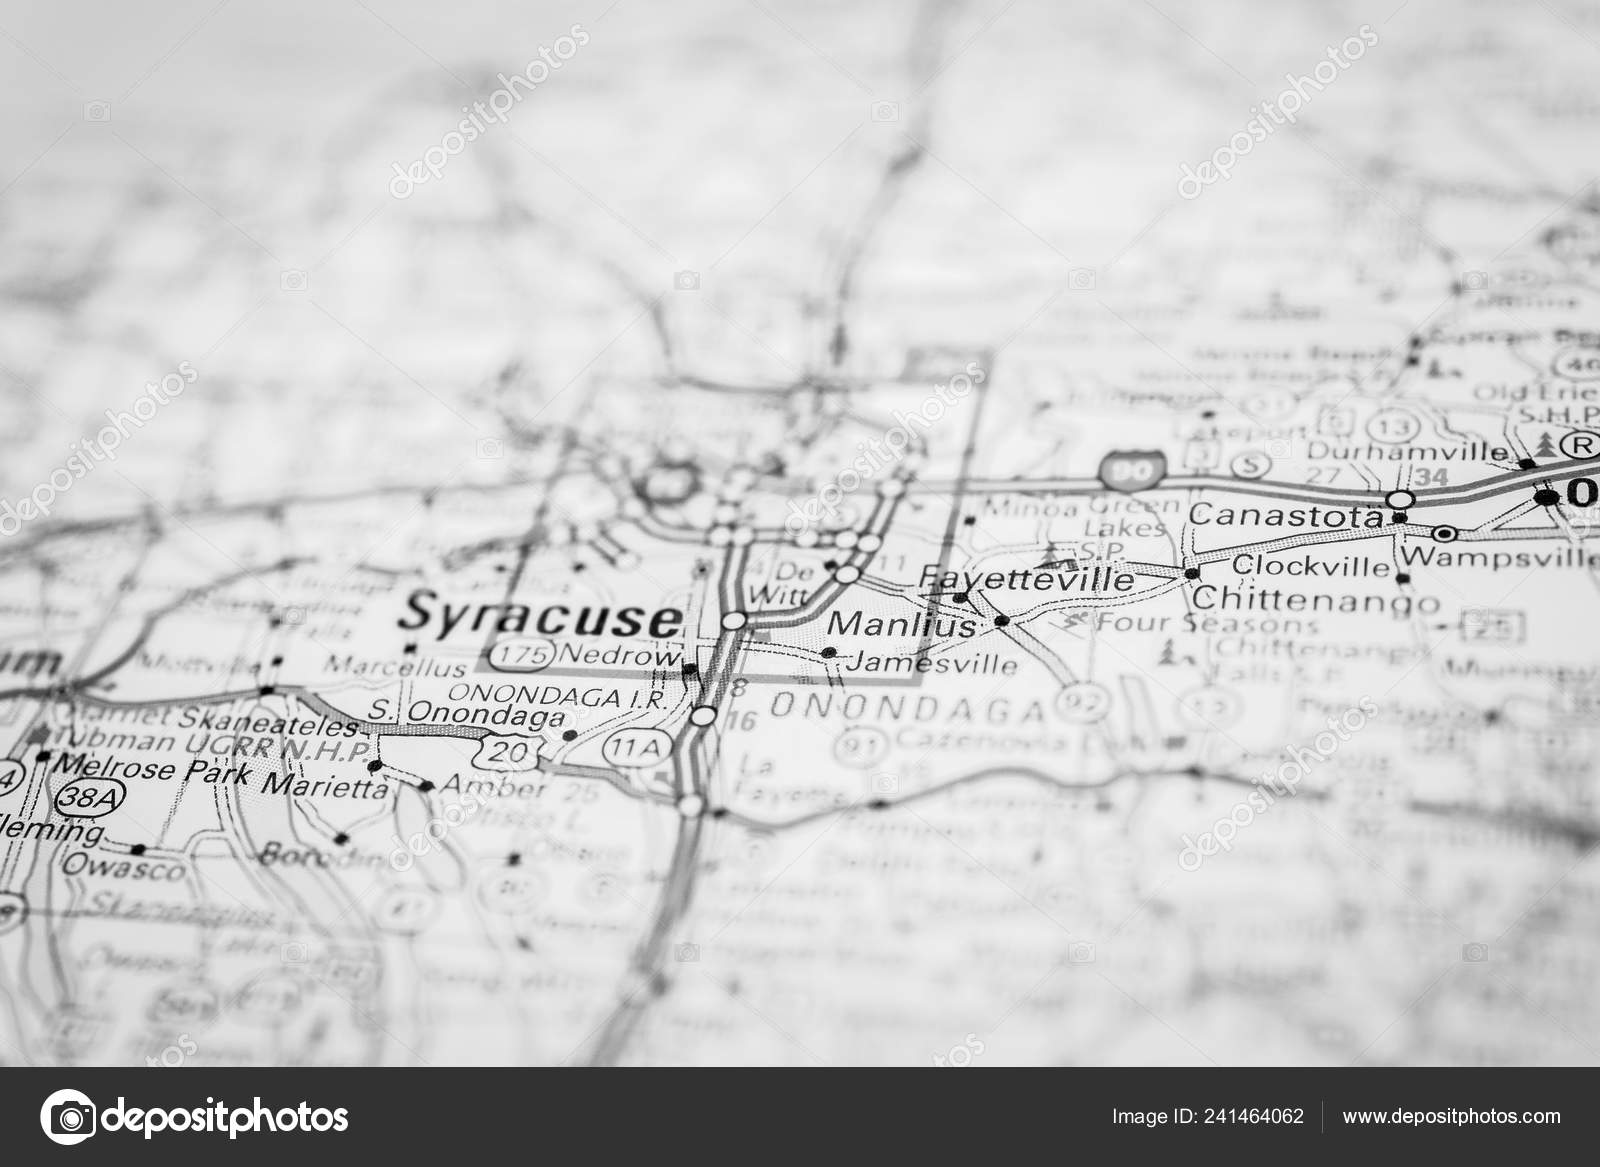 Syracuse Map Stock Photo C Aallm 241464062